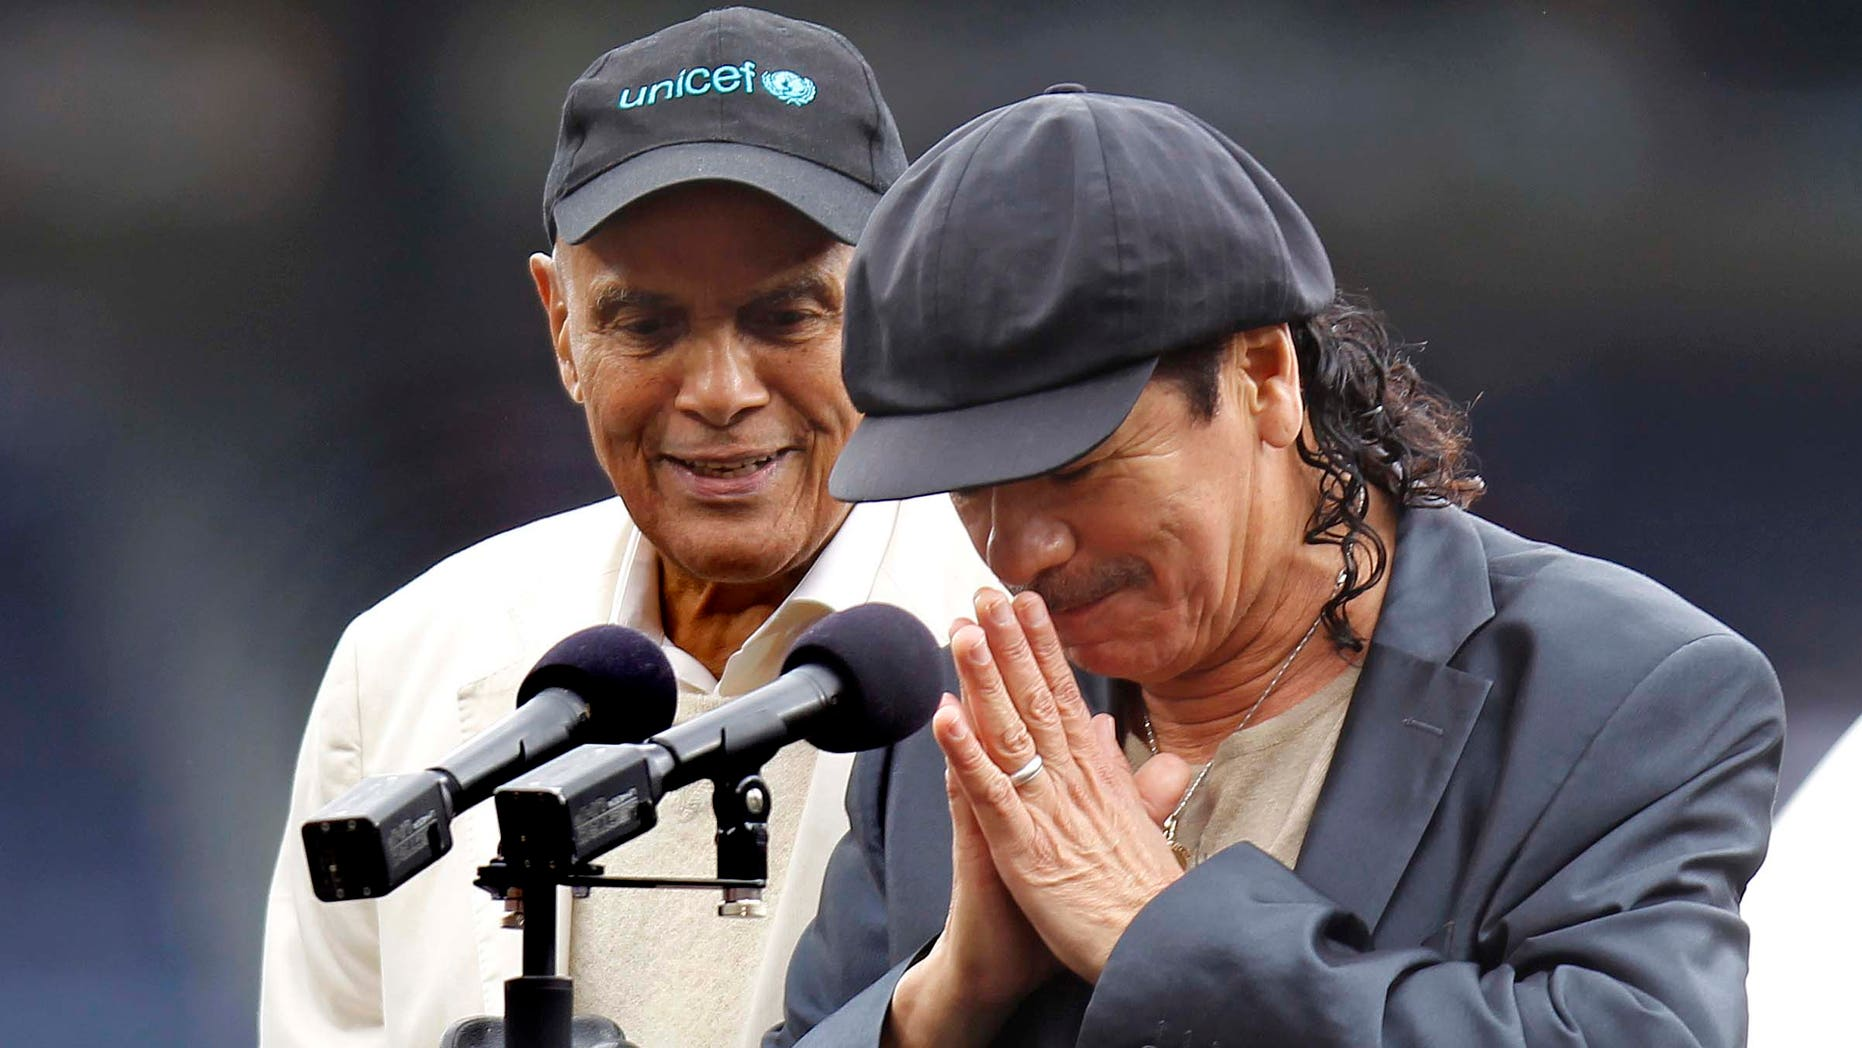 Musician Carlos Santana bows his head after receiving the Major League Baseball Beacon Award as Harry Belafonte. left, looks on during a pregame ceremony before the Atlanta Braves game against the Philadelphia Phillies in Atlanta, Sunday, May 15, 2011. (AP Photo/John Bazemore)